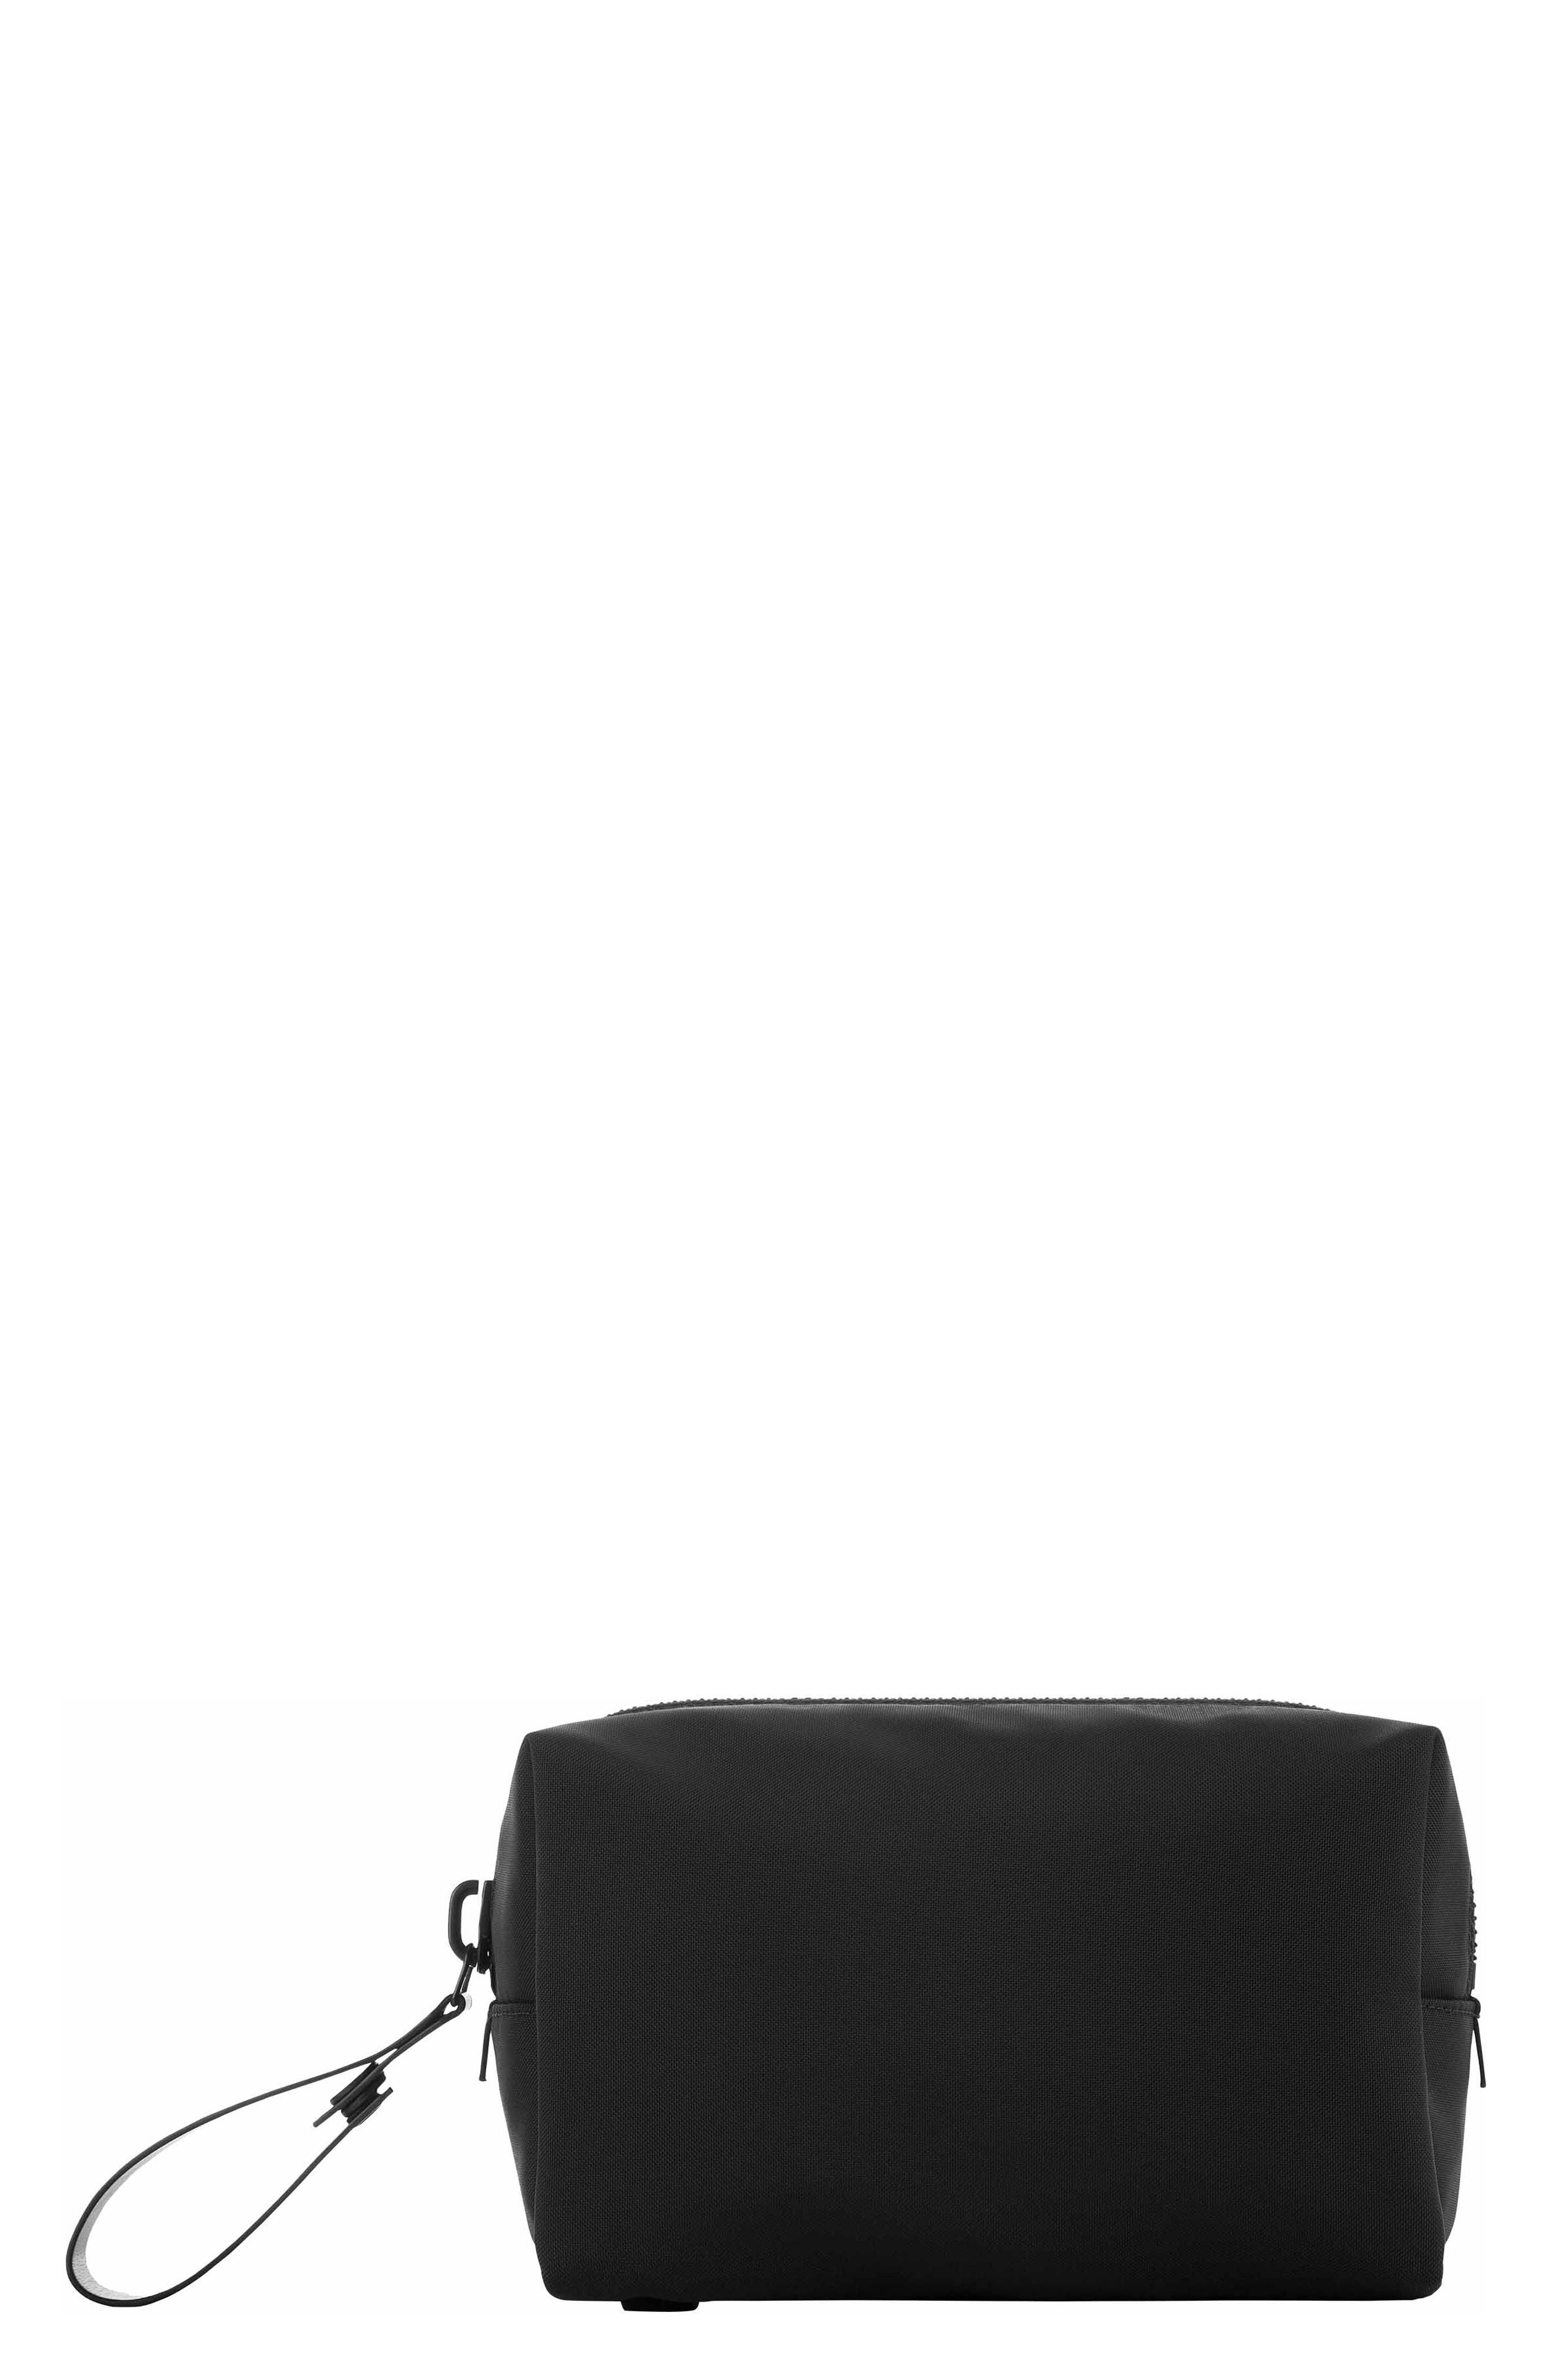 Nylon Dopp Kit,                             Main thumbnail 1, color,                             BLACK NYLON/ BLACK LEATHER